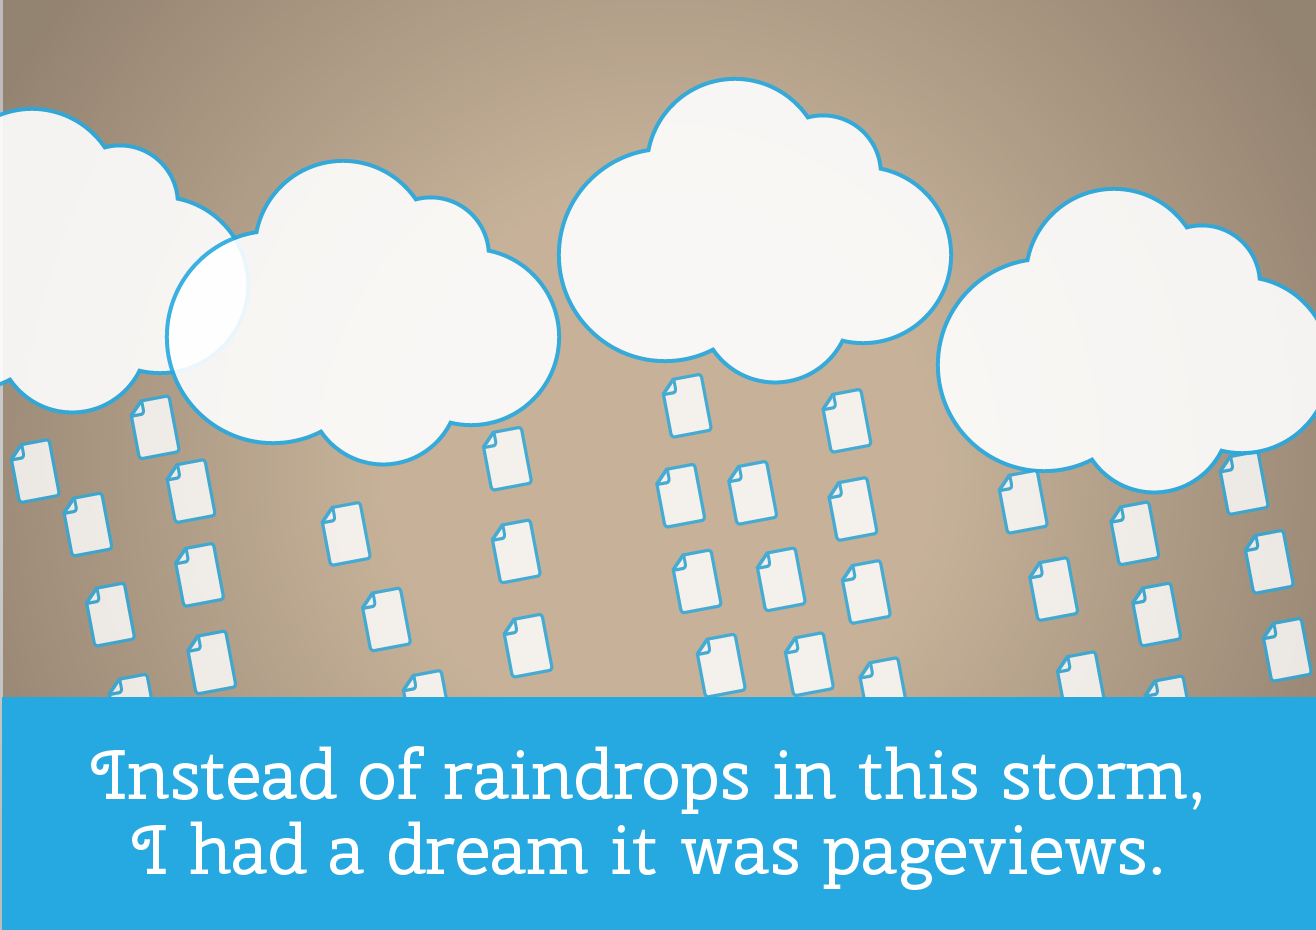 Instead of raindrops in this storm, I had a dream it was pageviews.